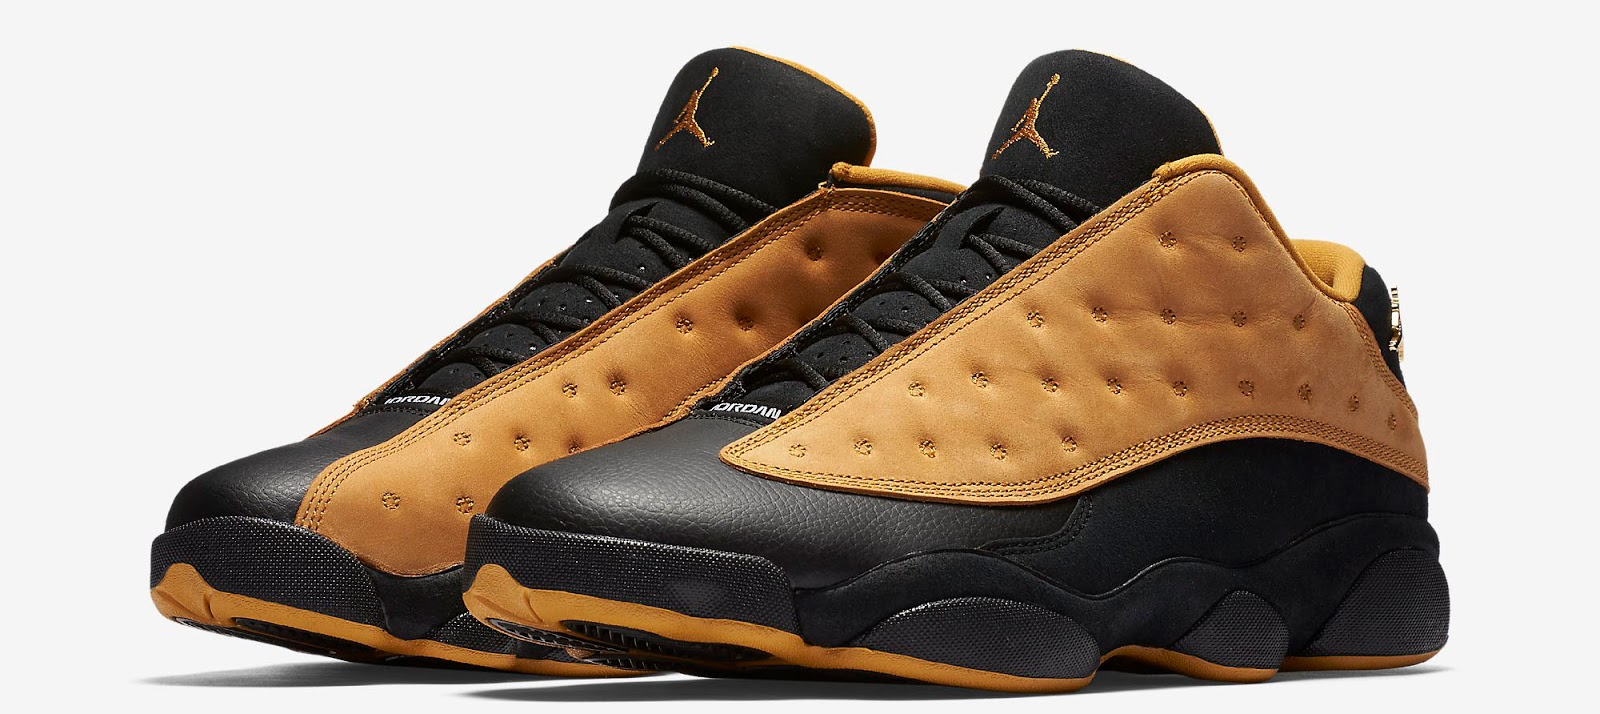 new styles 20dca 8582b The latest colorway of the Air Jordan 13 Retro Low hits stores this  weekend. Originally released in 1998, the original black and chutney AJ 13  Low is set ...